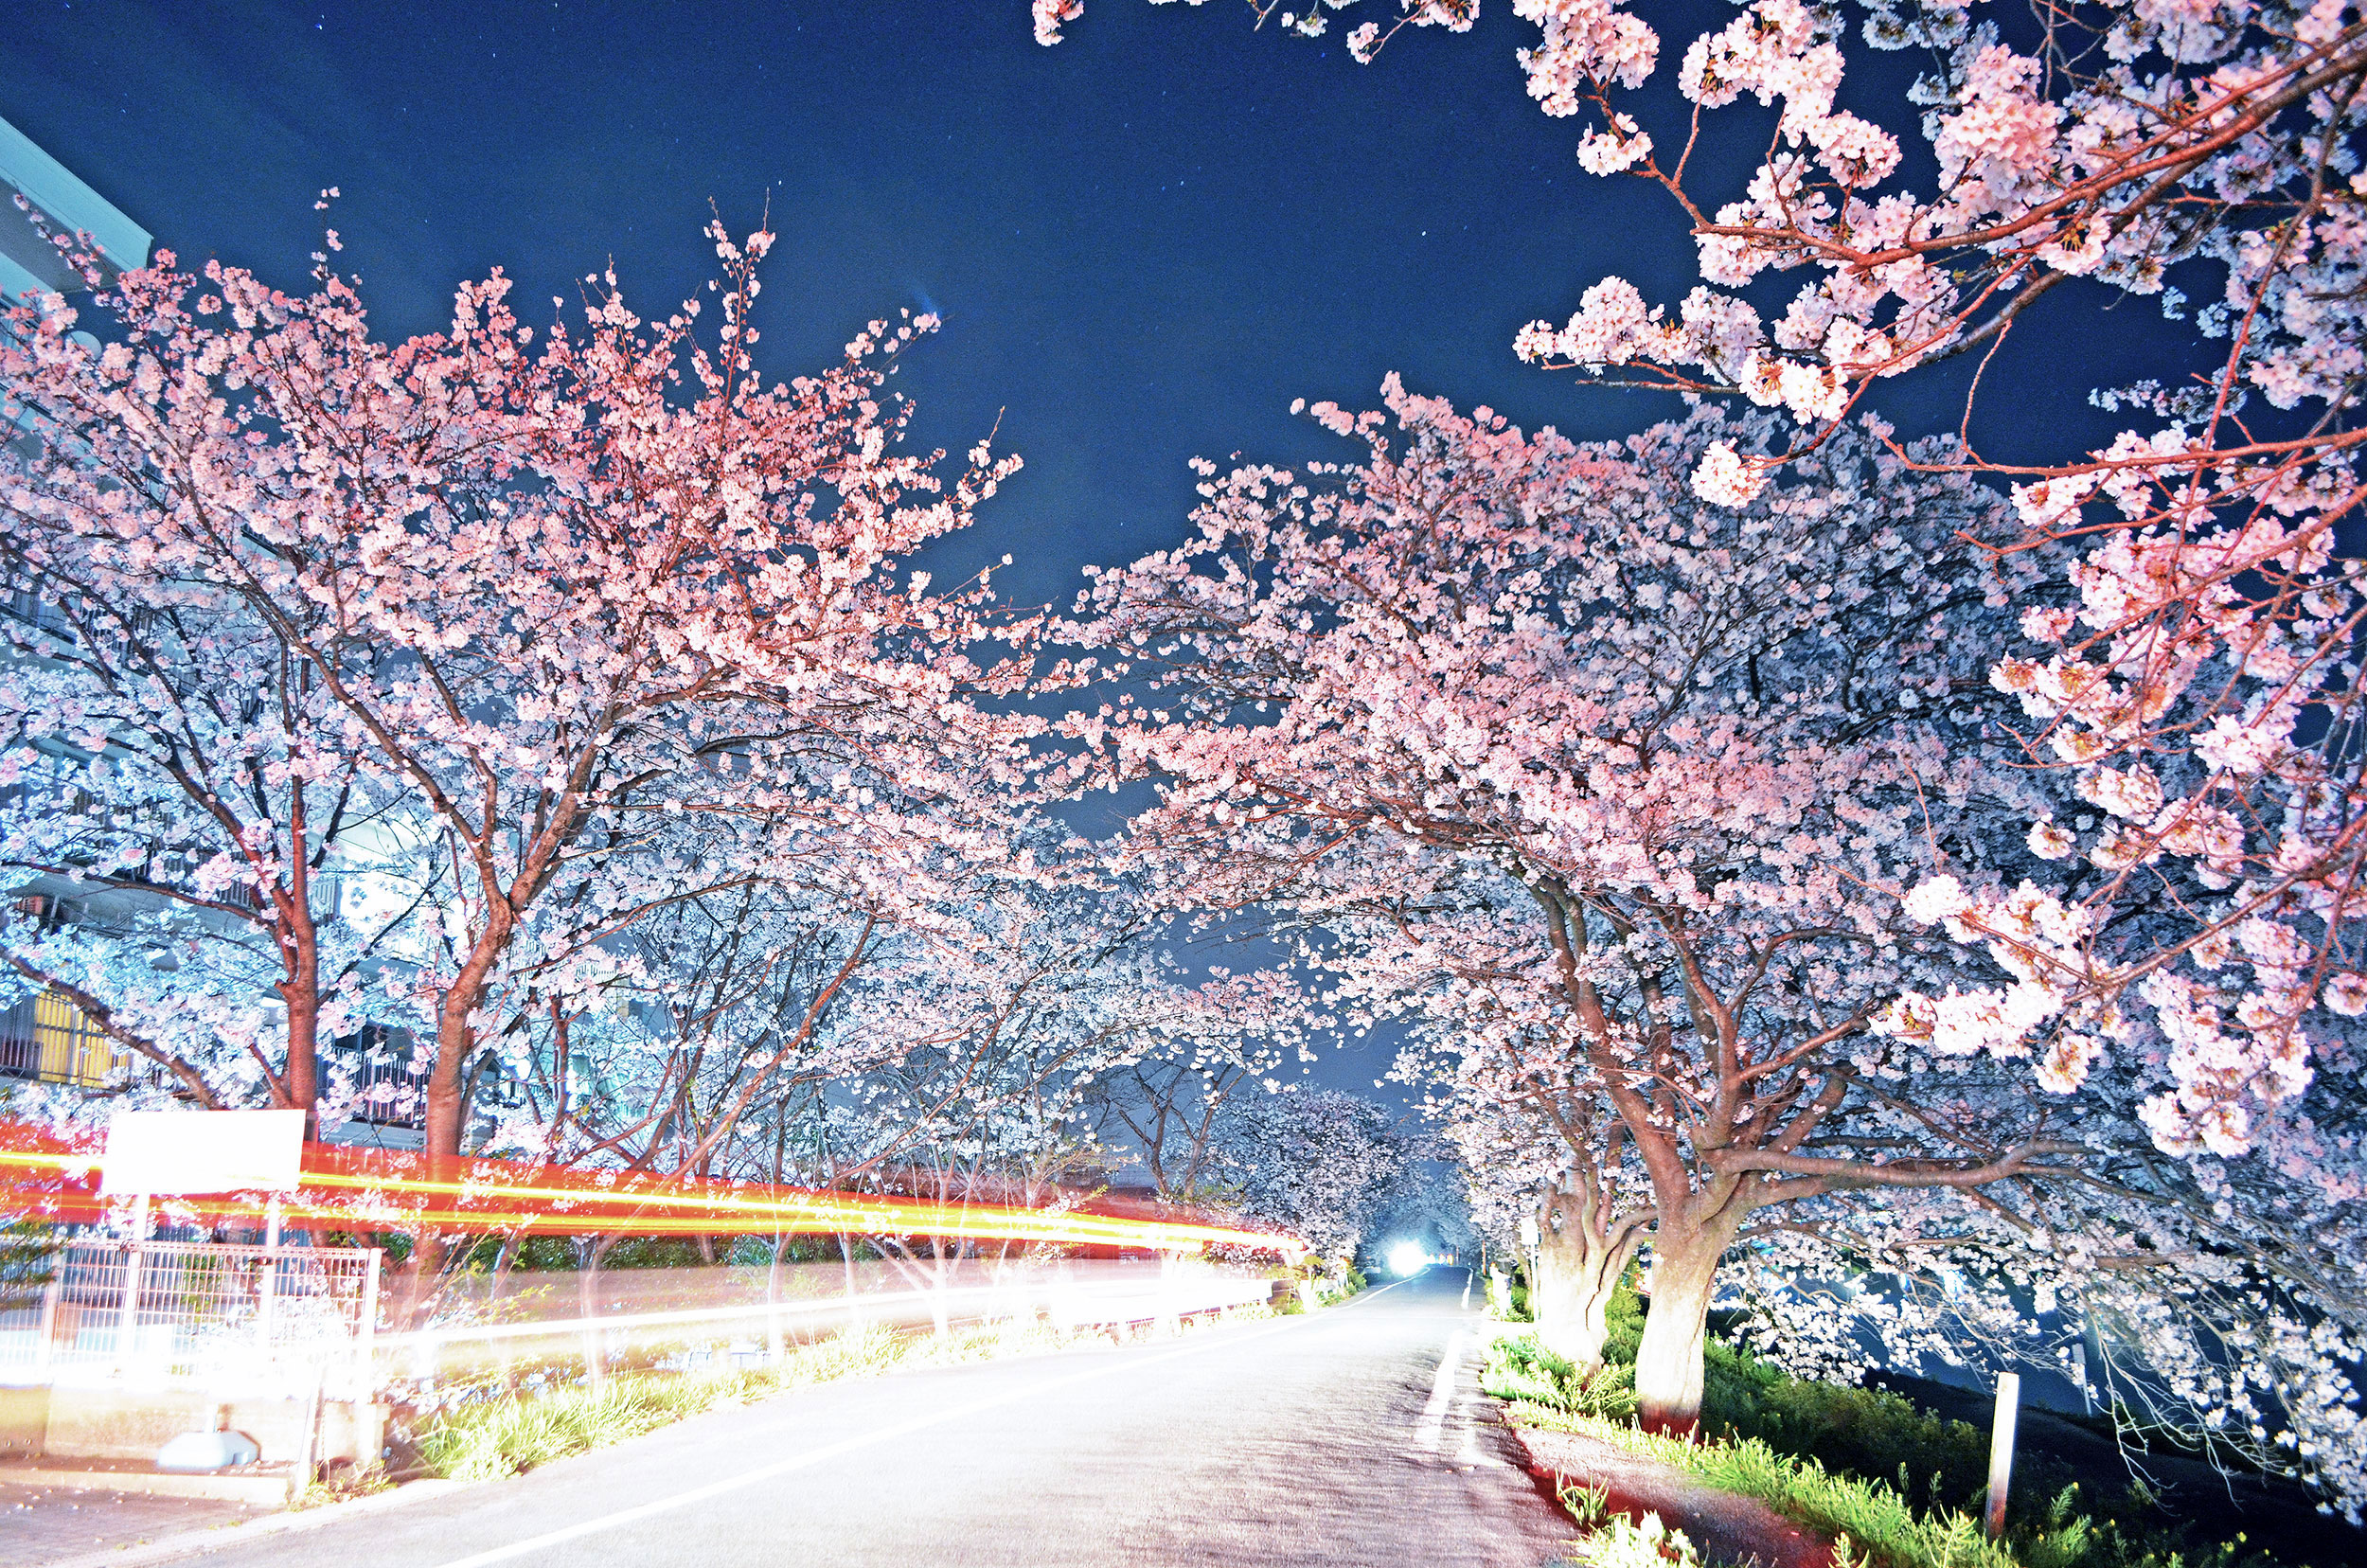 A car passing under cherry blossom sakura trees along the Imagawa river in Yukuhashi, Fukuoka